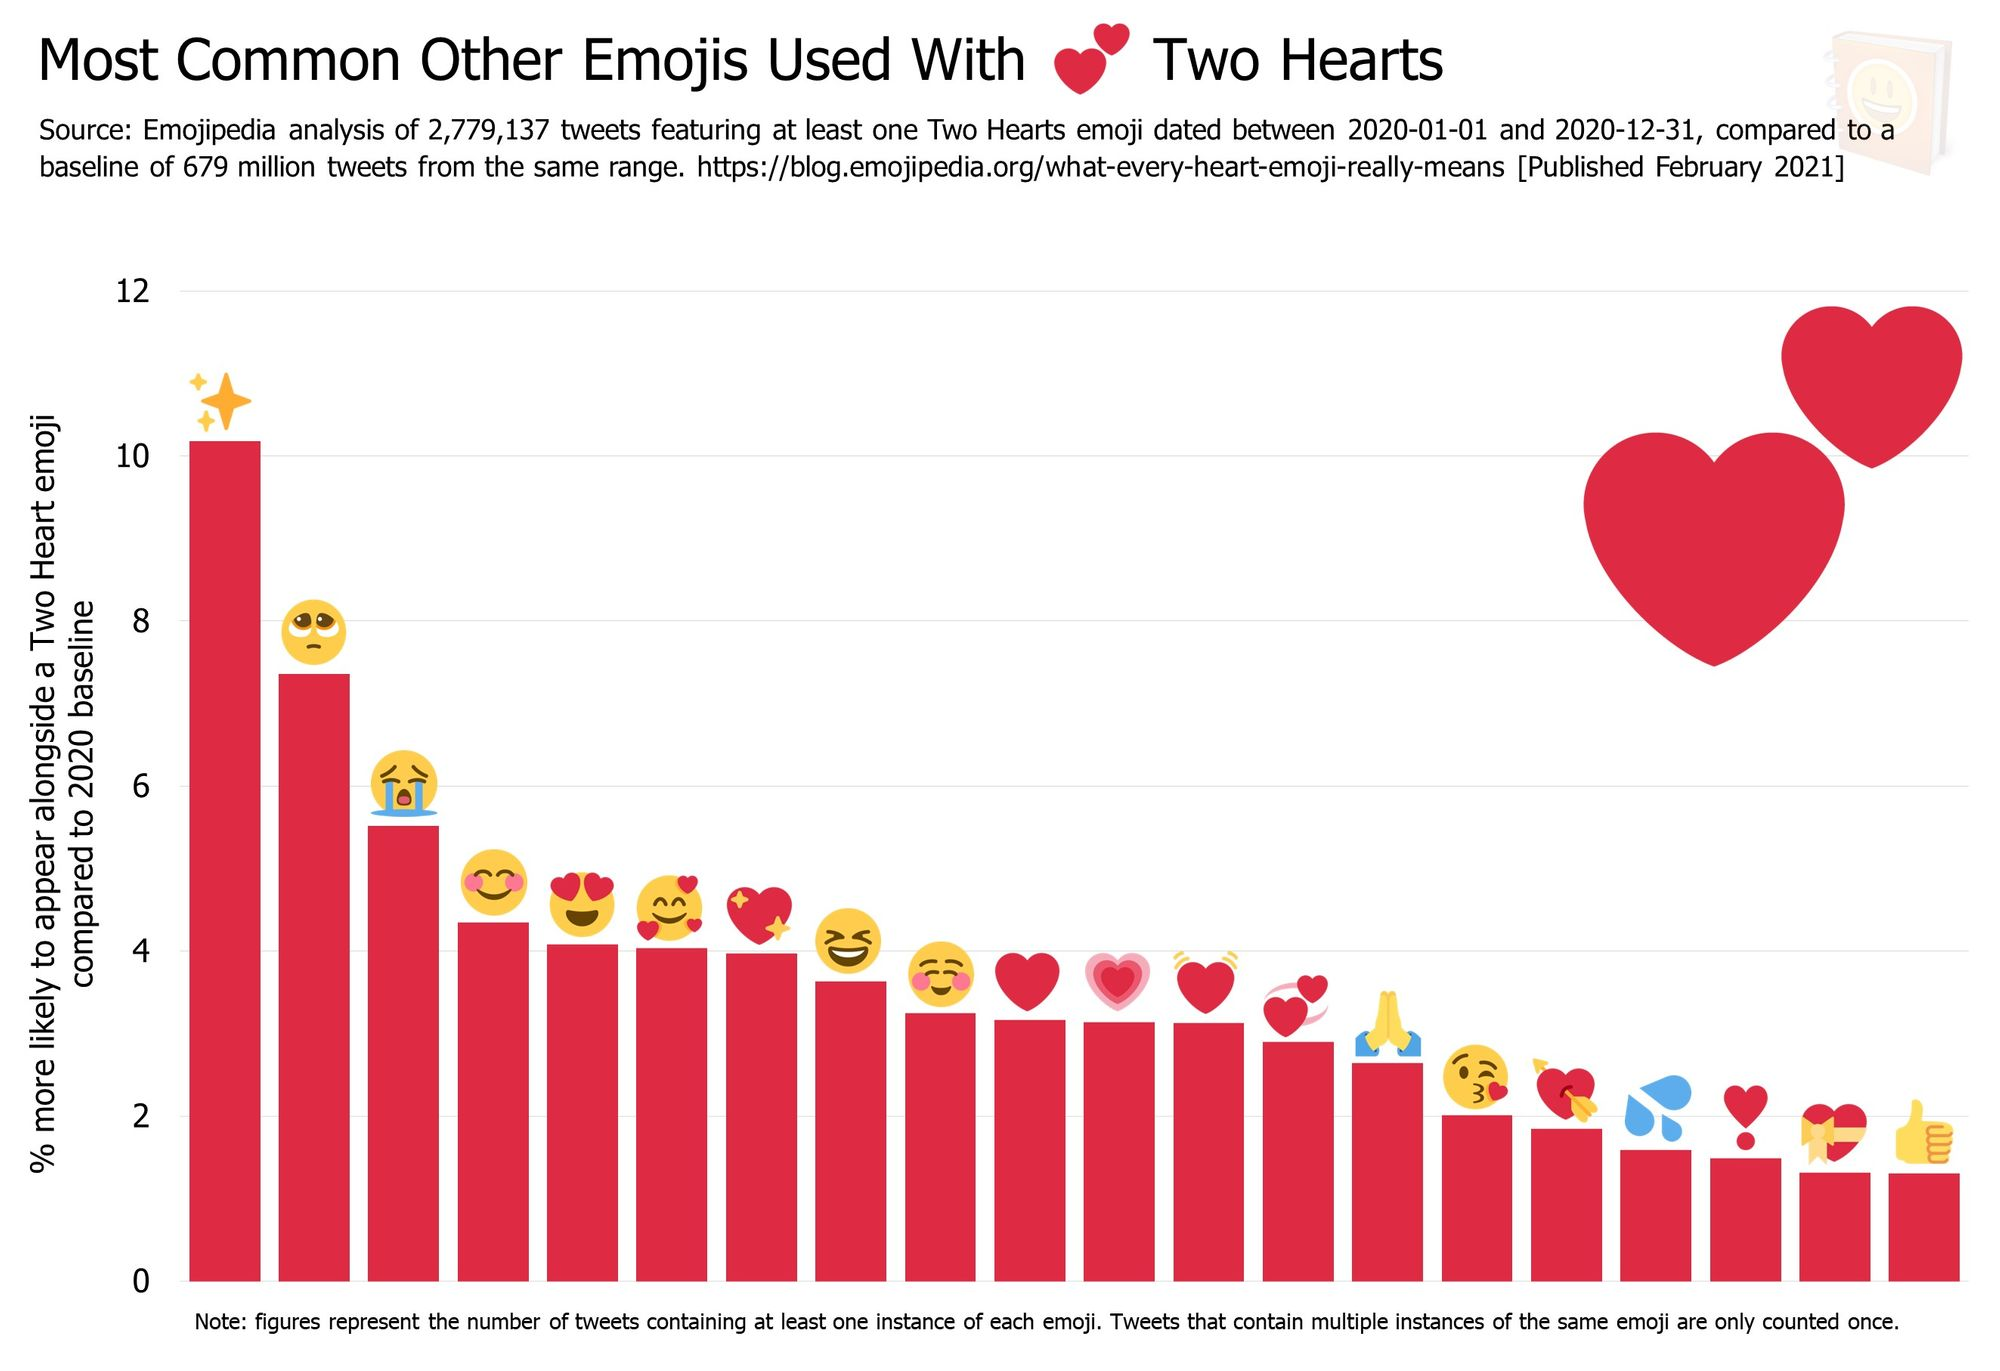 Emojipedia-Blog---What-Every-Heart-Emoji-Really-Means---Most-Common-Other-Emojis-Used-With-------Two-Hearts